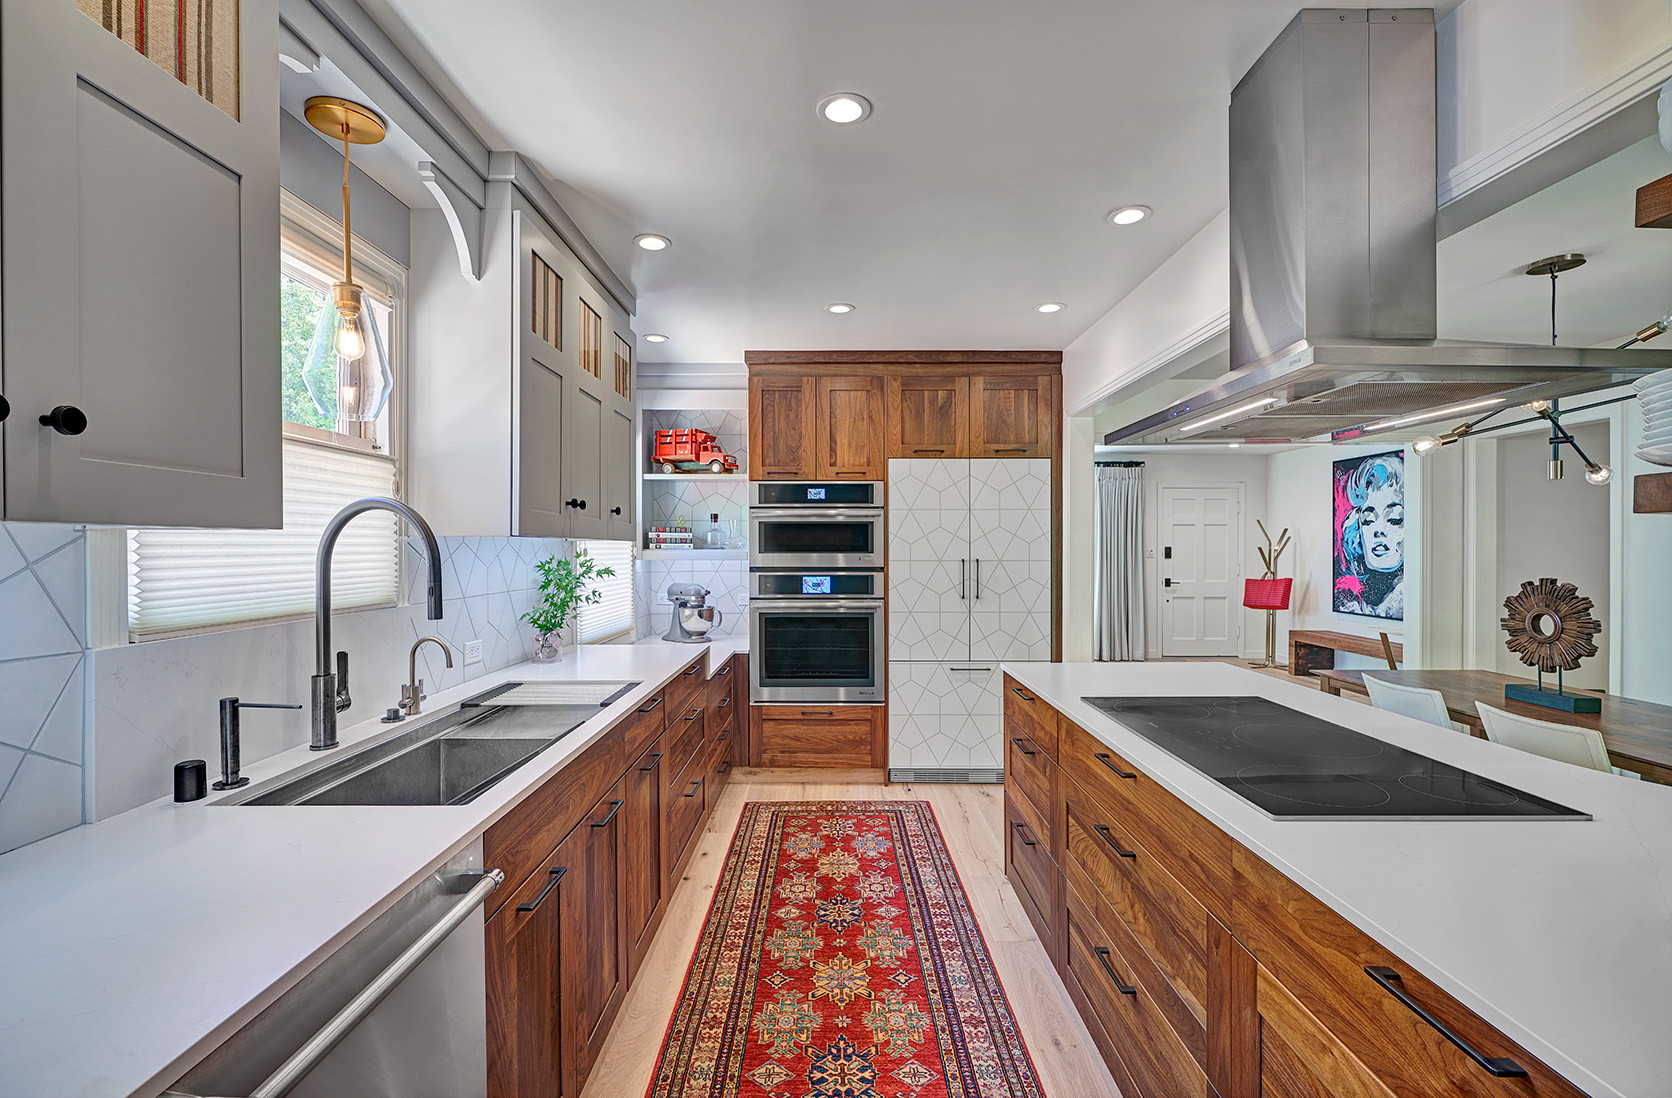 10 Beautiful Kitchen Pictures & Ideas - January, 10  Houzz